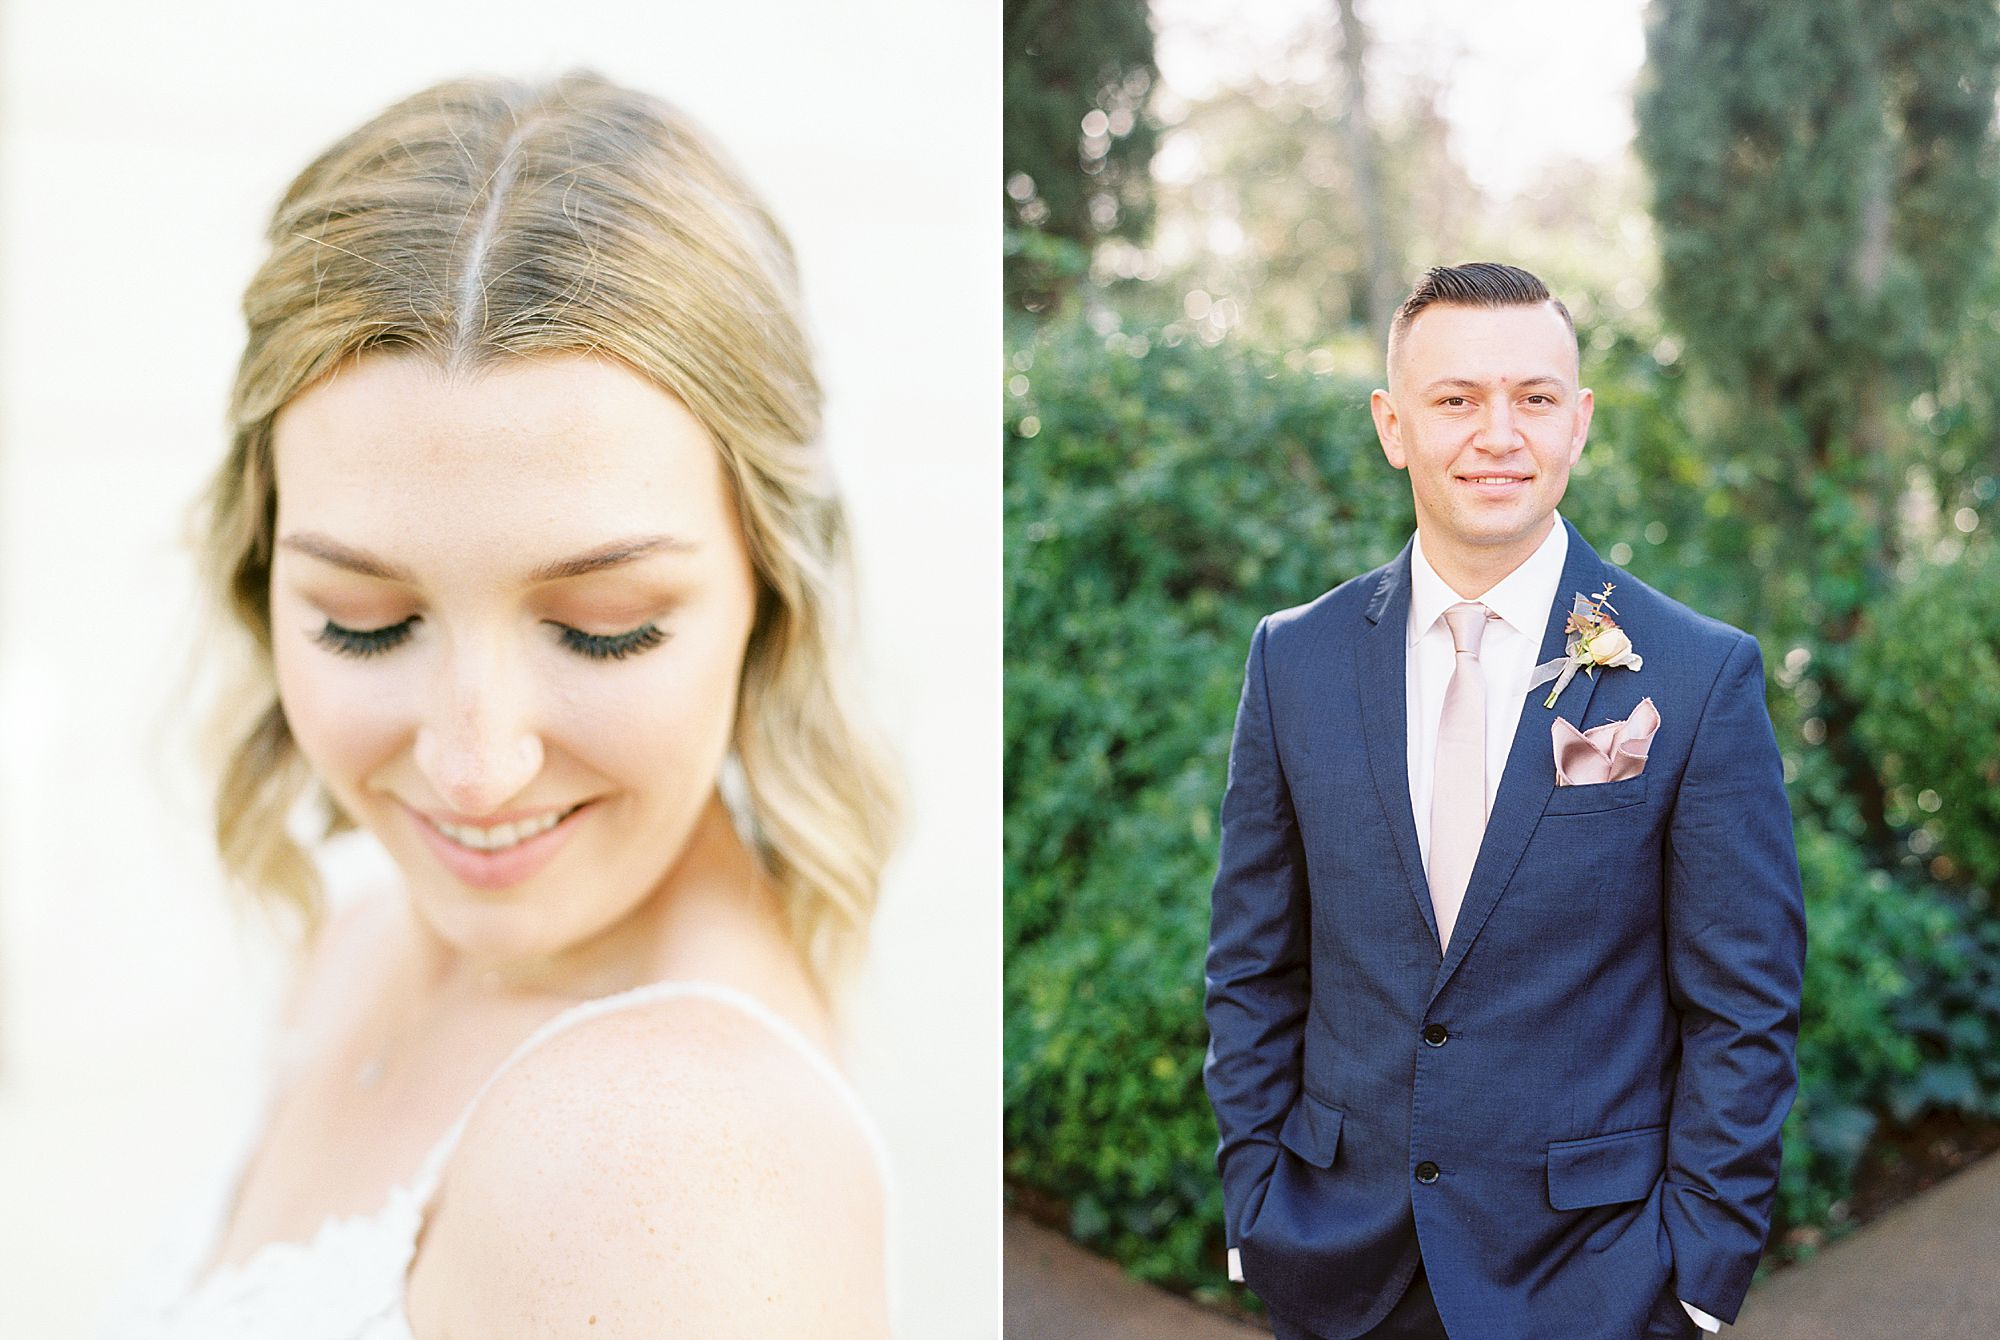 Inn at Park Winters Wedding - Lindsay and Shane - Ashley Baumgartner - Park Winters Wedding Photographer - Sacramento Wedding Photographer_0015.jpg